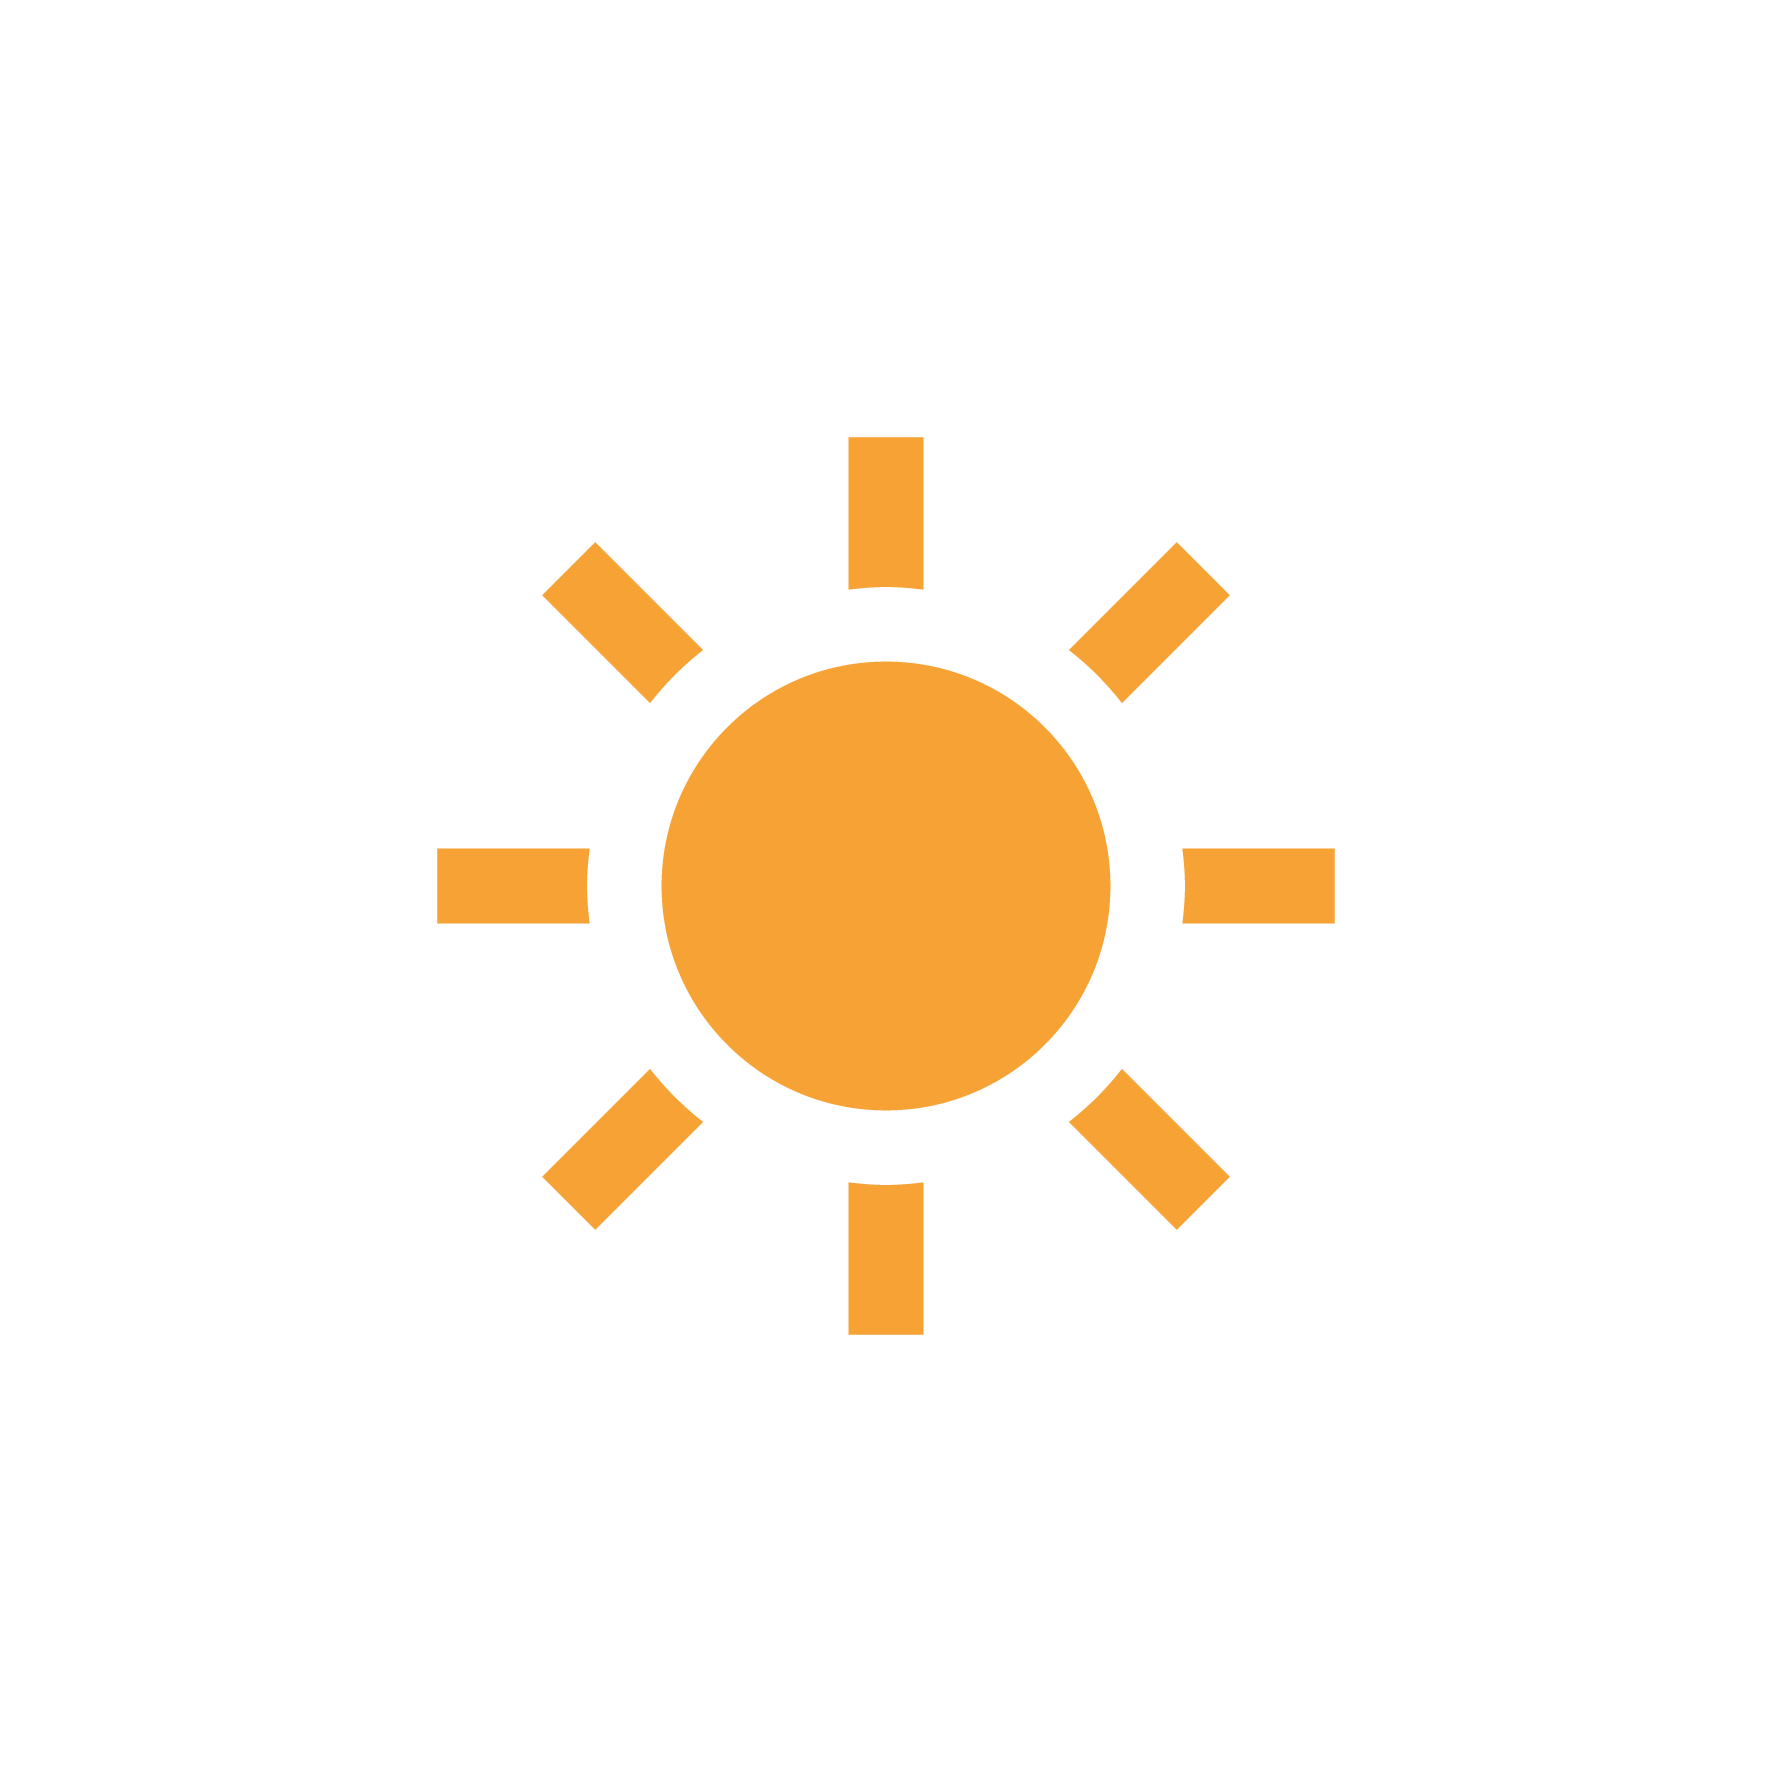 iconmonstr-weather-1 [Converted]-01.png